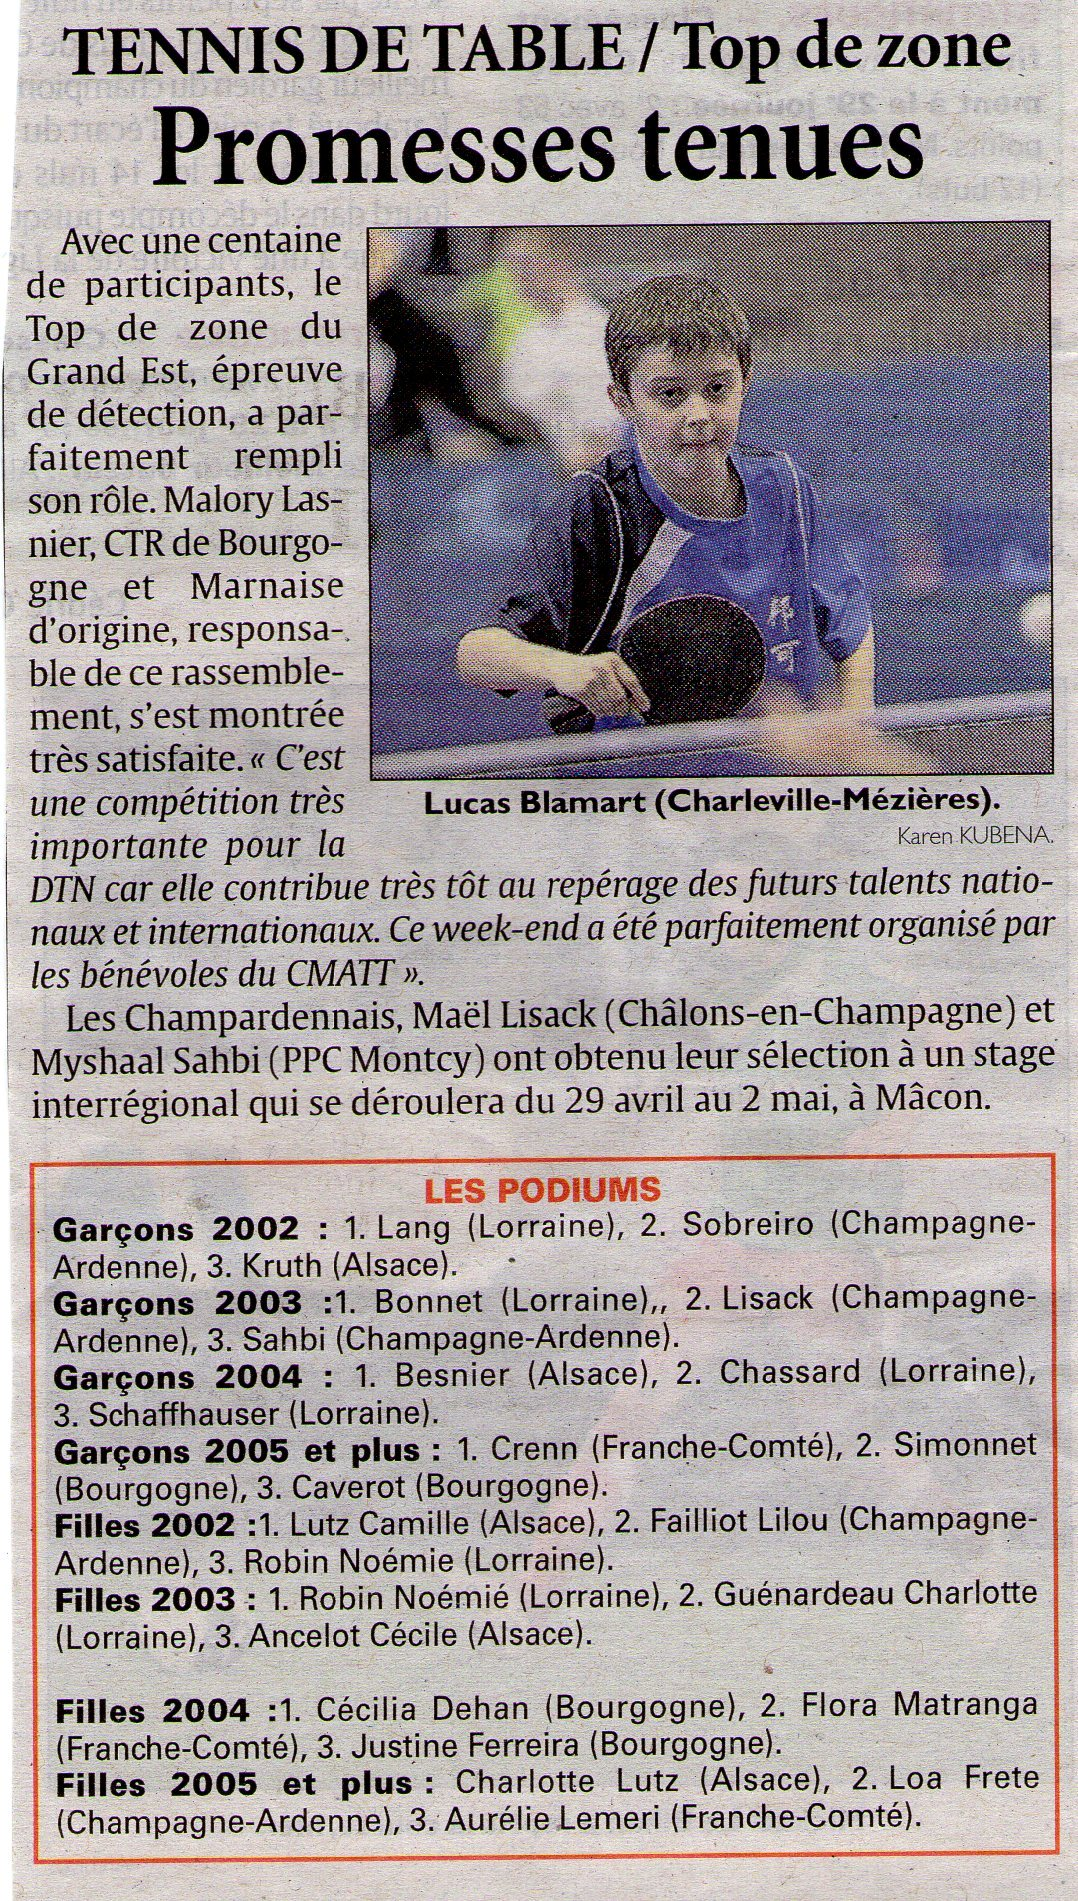 data/2011/multimedia/presse/03/Top de zone - Promesses tenues.jpg